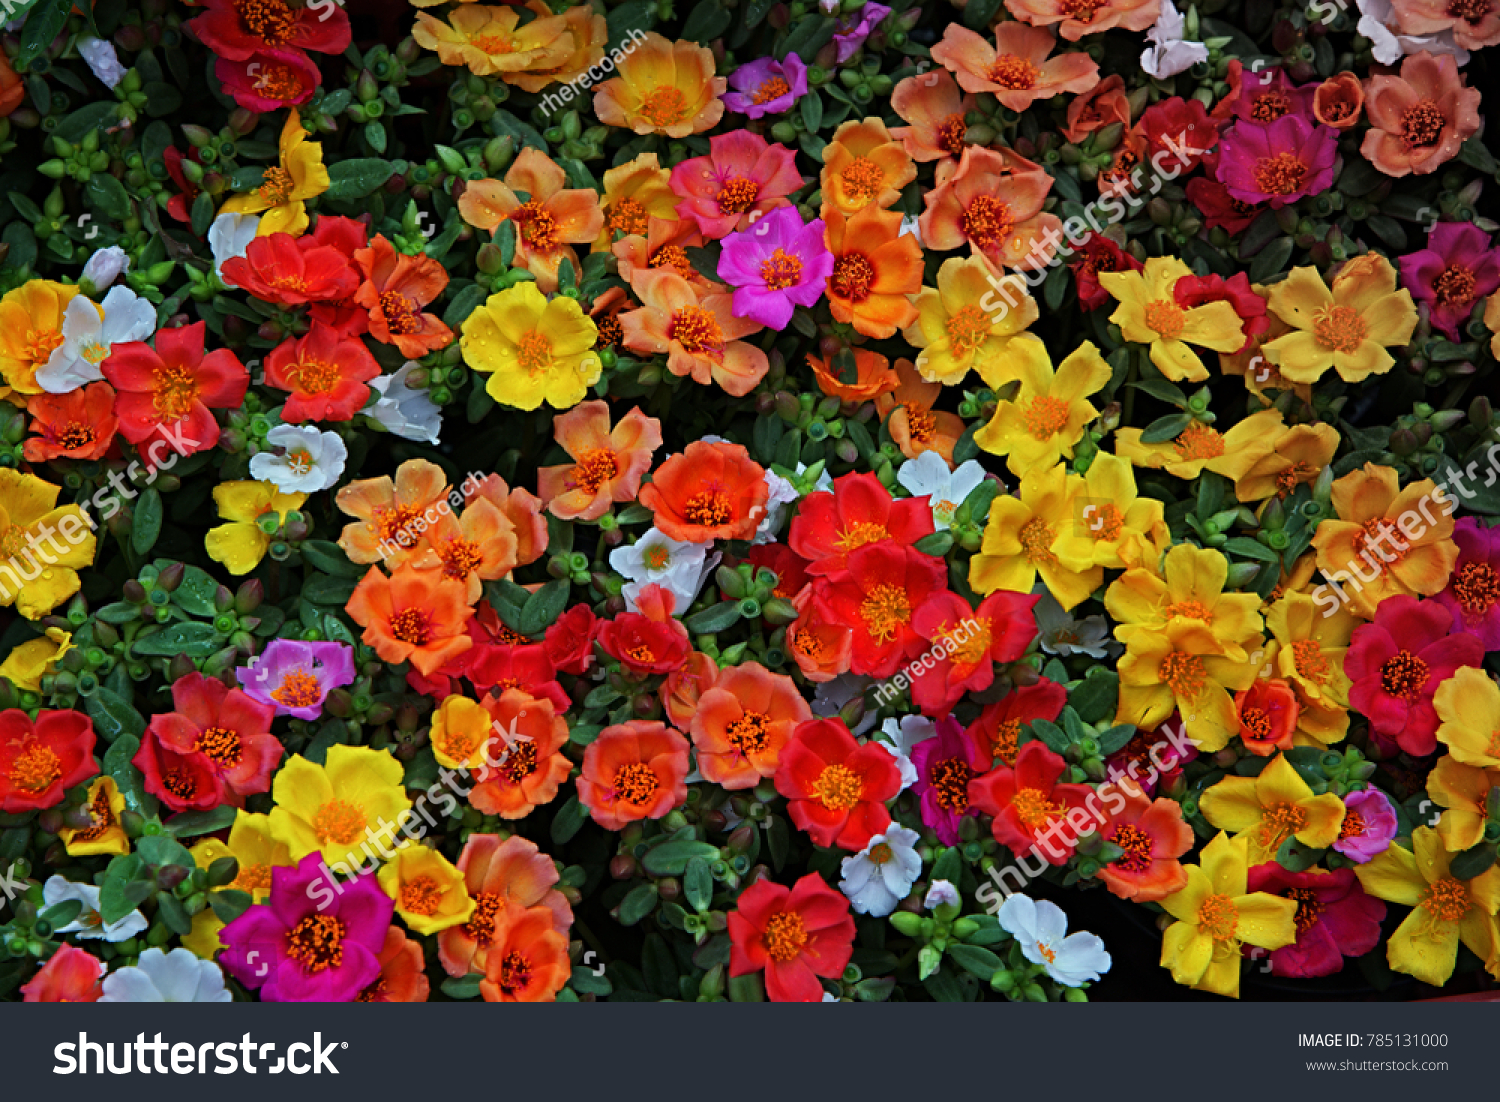 Many Bright Multi Colored Flowers Stock Photo (Royalty Free ...